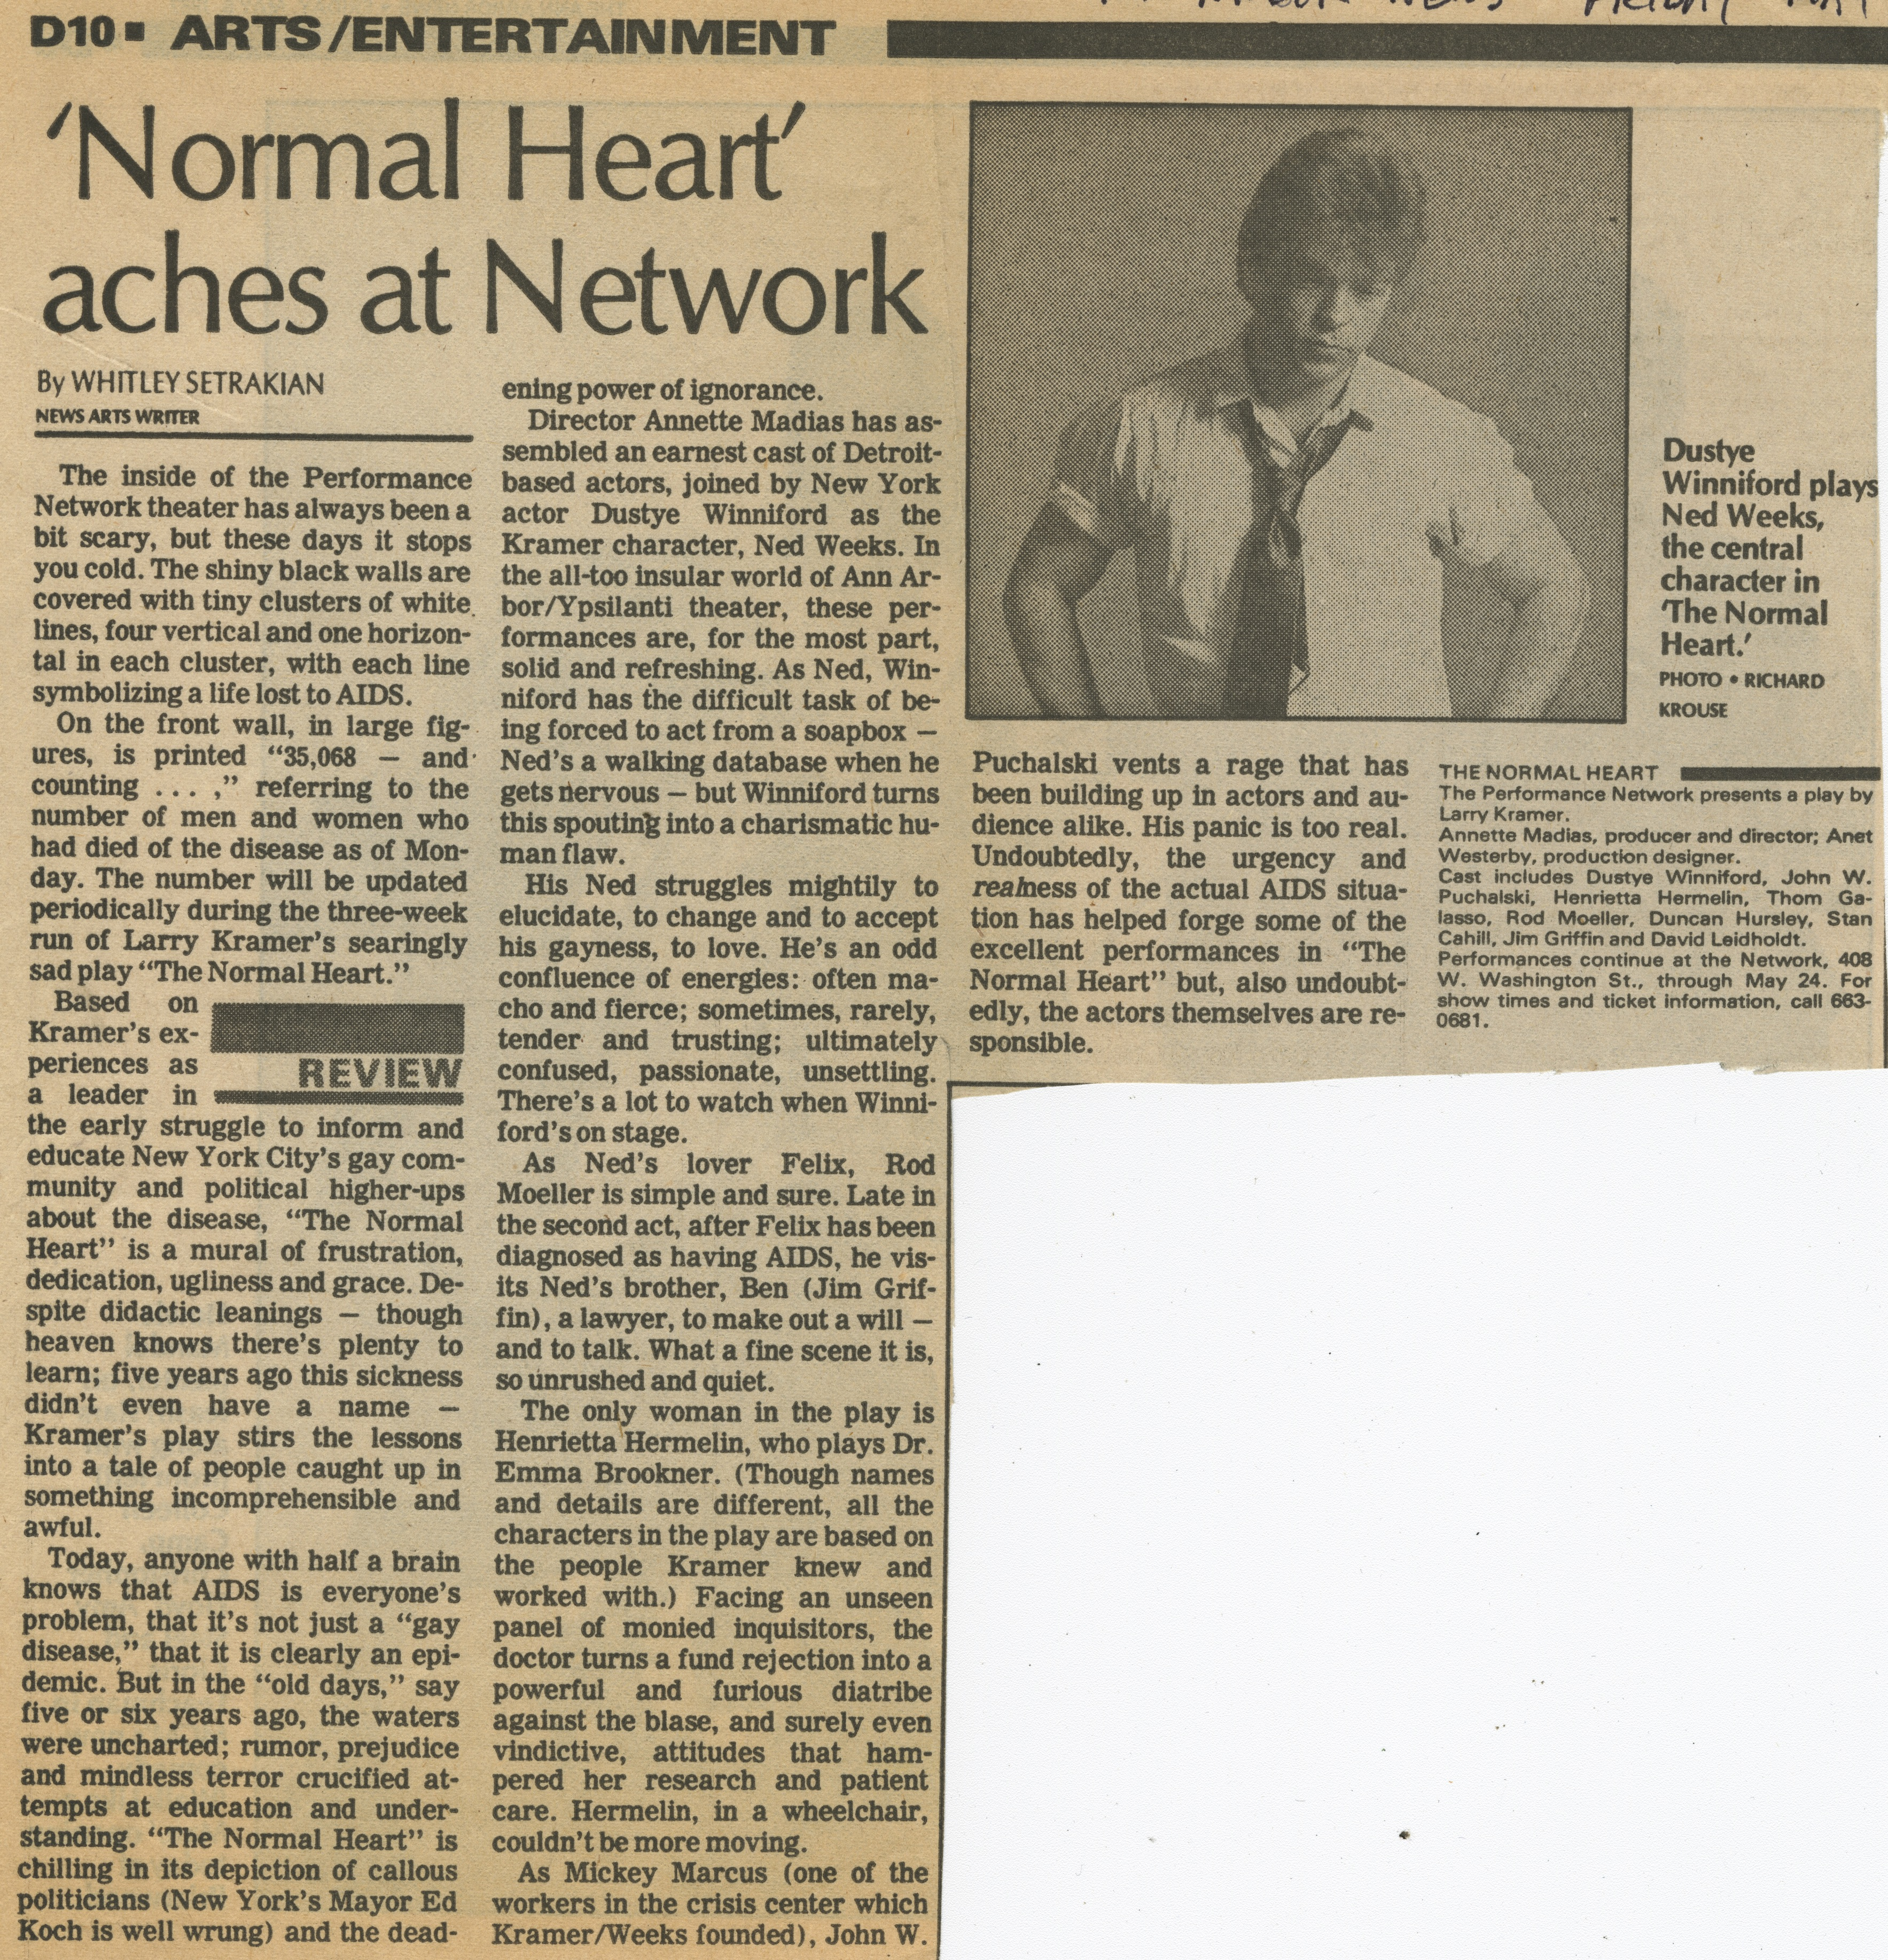 'Normal Heart' aches at Network image